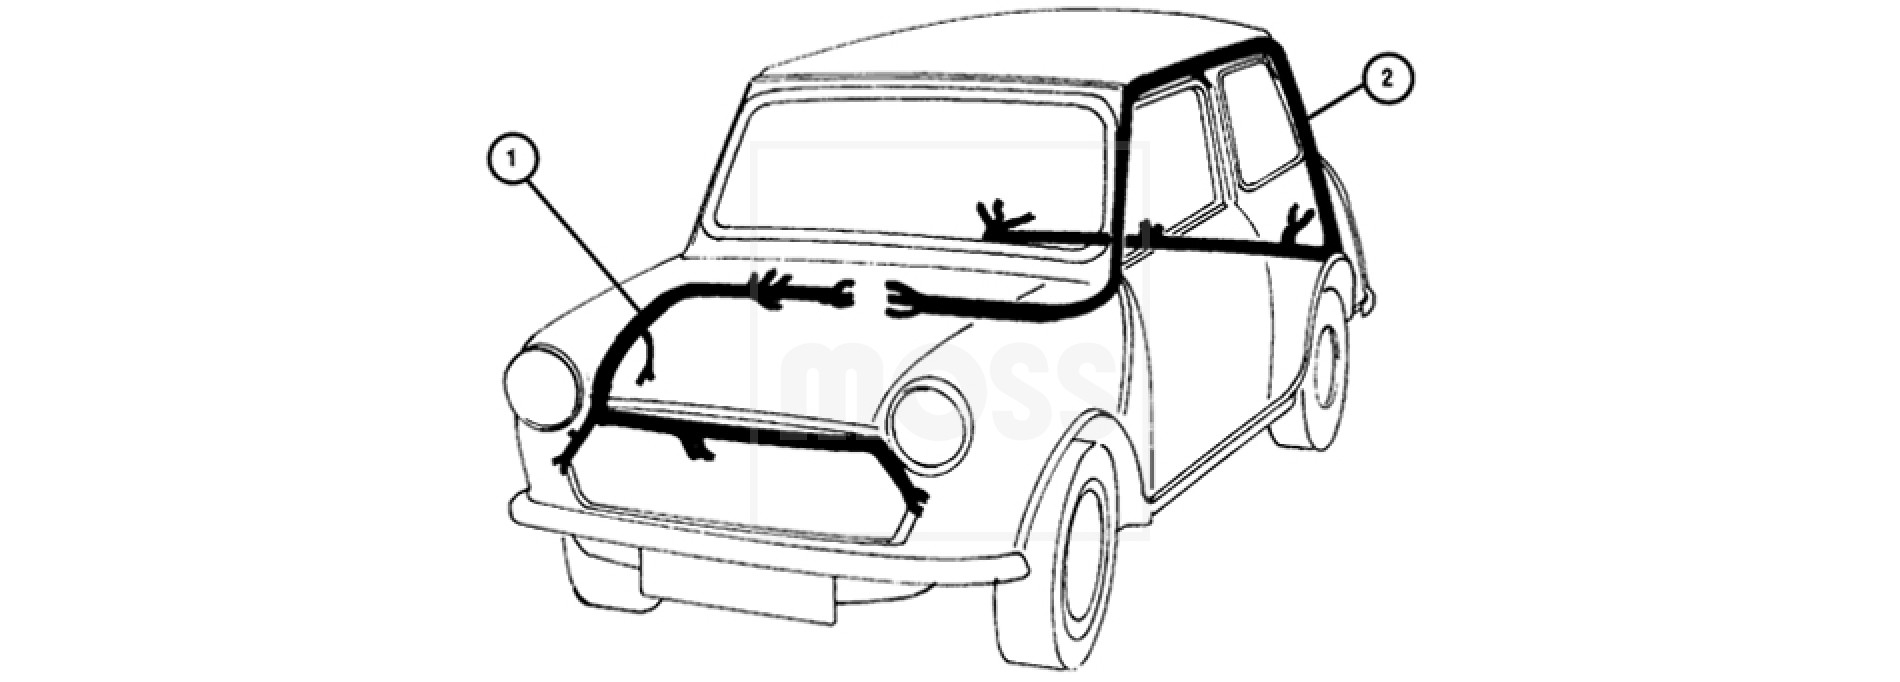 1963 mg midget wiring diagram